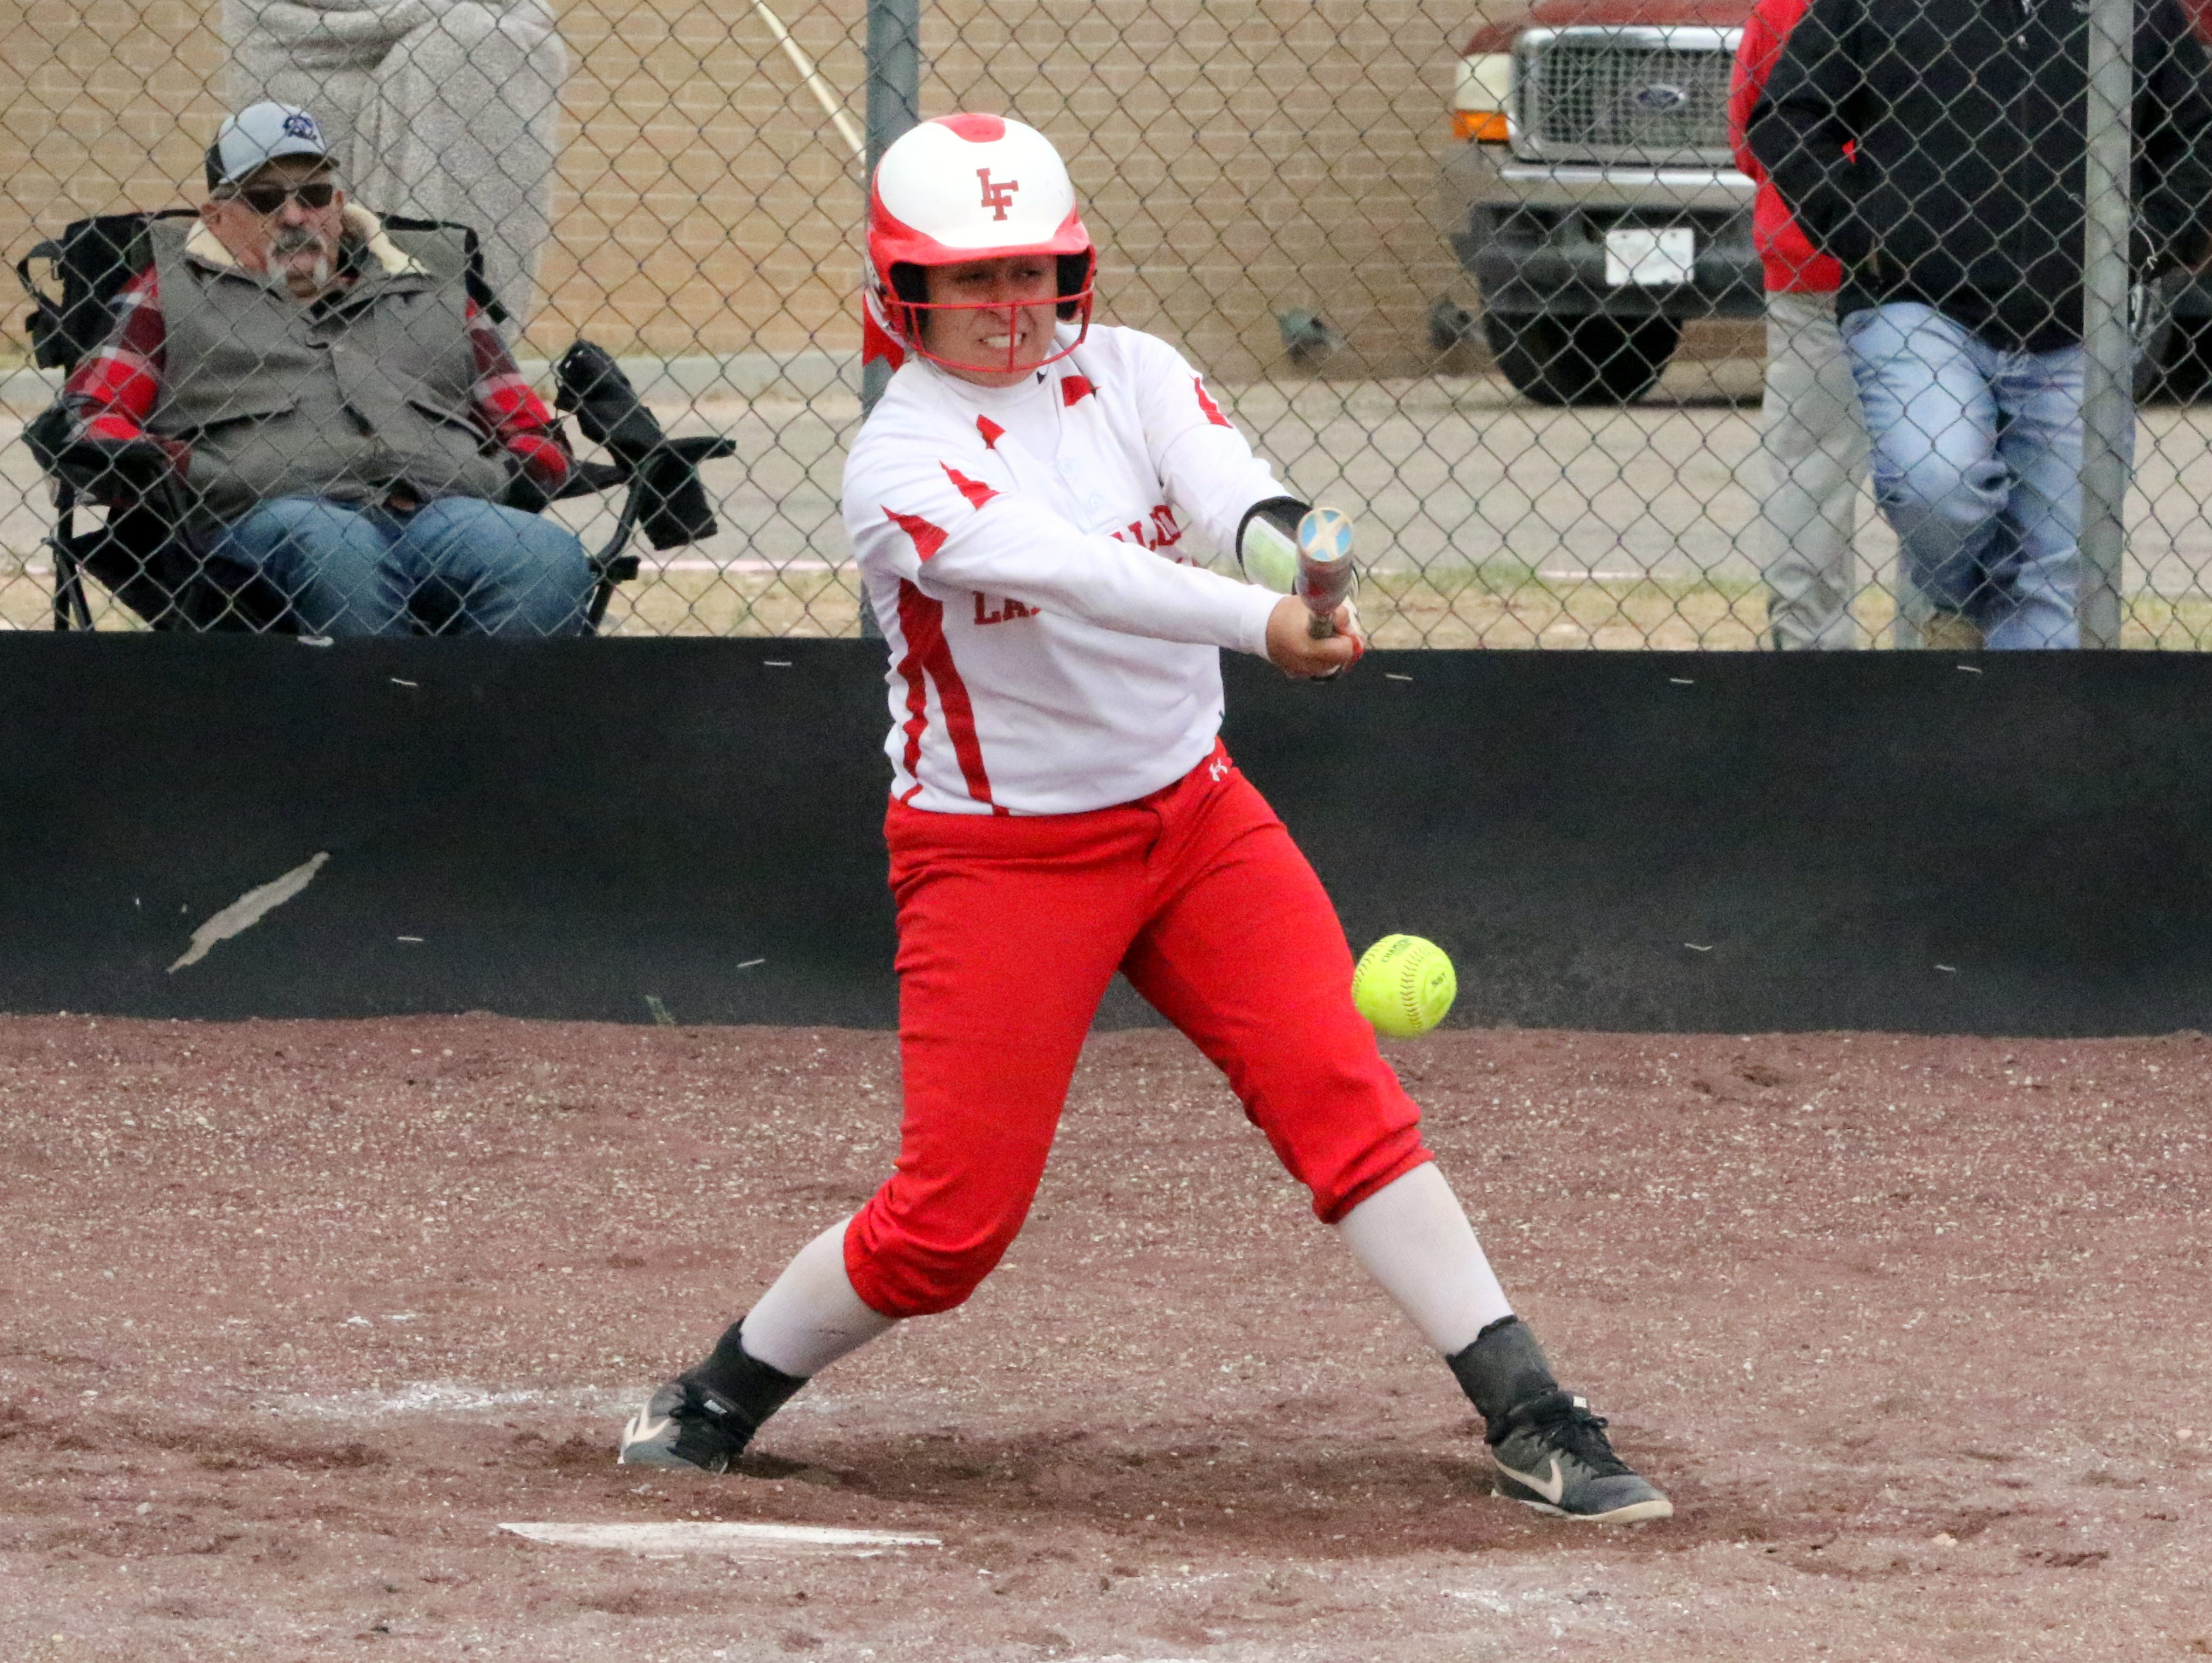 Loving's Angelica Villegas connects with a pitch during Game 2 of Saturday's doubleheader. Eunice won Game 1, 13-12 and Loving won Game 2, 16-6.